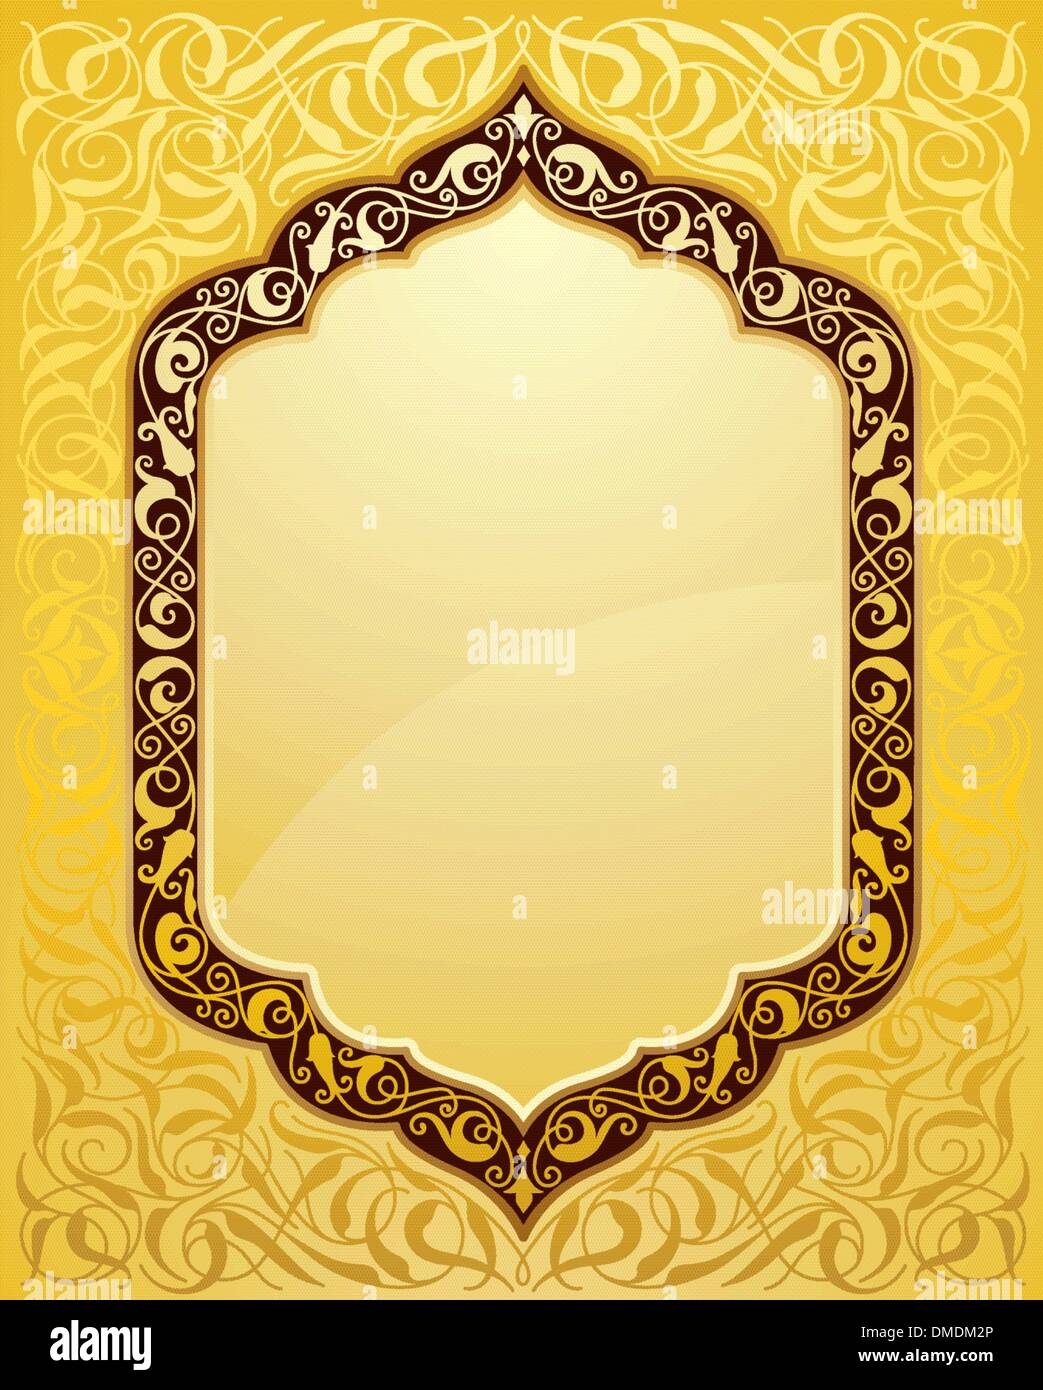 elegant islamic template design in gold background stock vector art